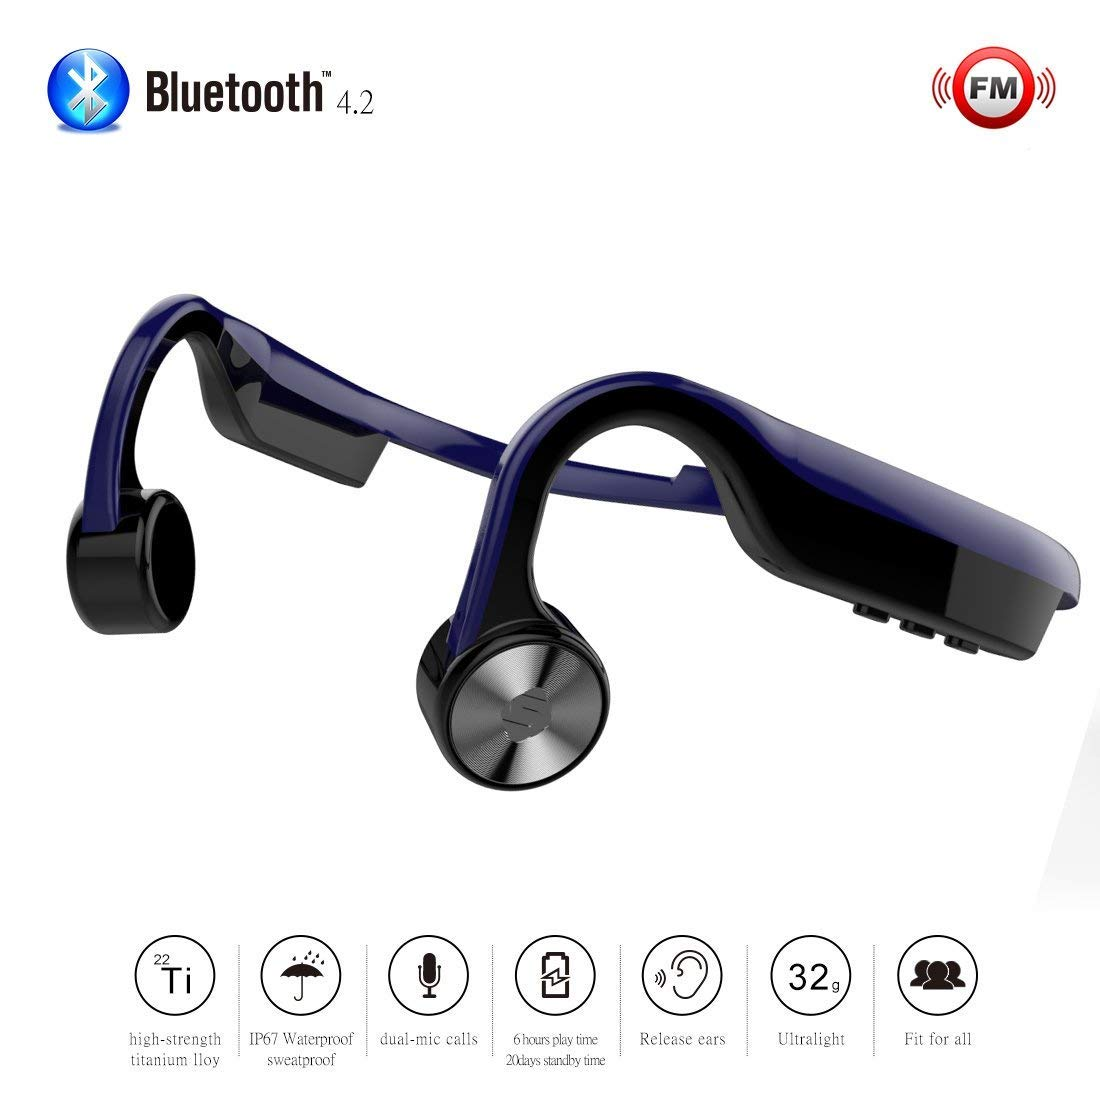 Bone Conduction Headset Bluetooth Wireless FM Radio Stereo with Mic for  Running Driving Cycling IP67 Waterproof Open Ear Sports Titanium Headphones